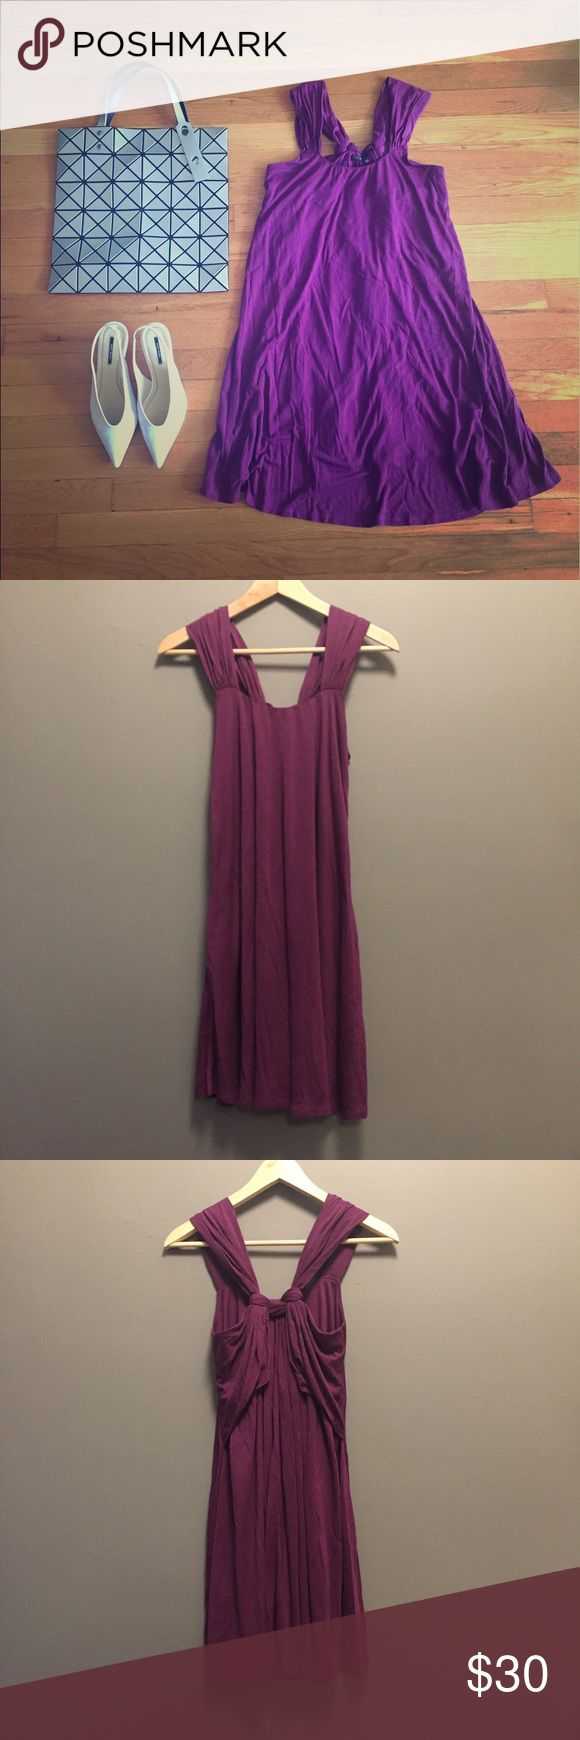 MAJE purple knotted purple summer dress It's an effortless, chic summer dress. It could be formal as a night out dress with silver evening sandals or wearing with black leather jacket to achieve more edgier style. Maje Dresses